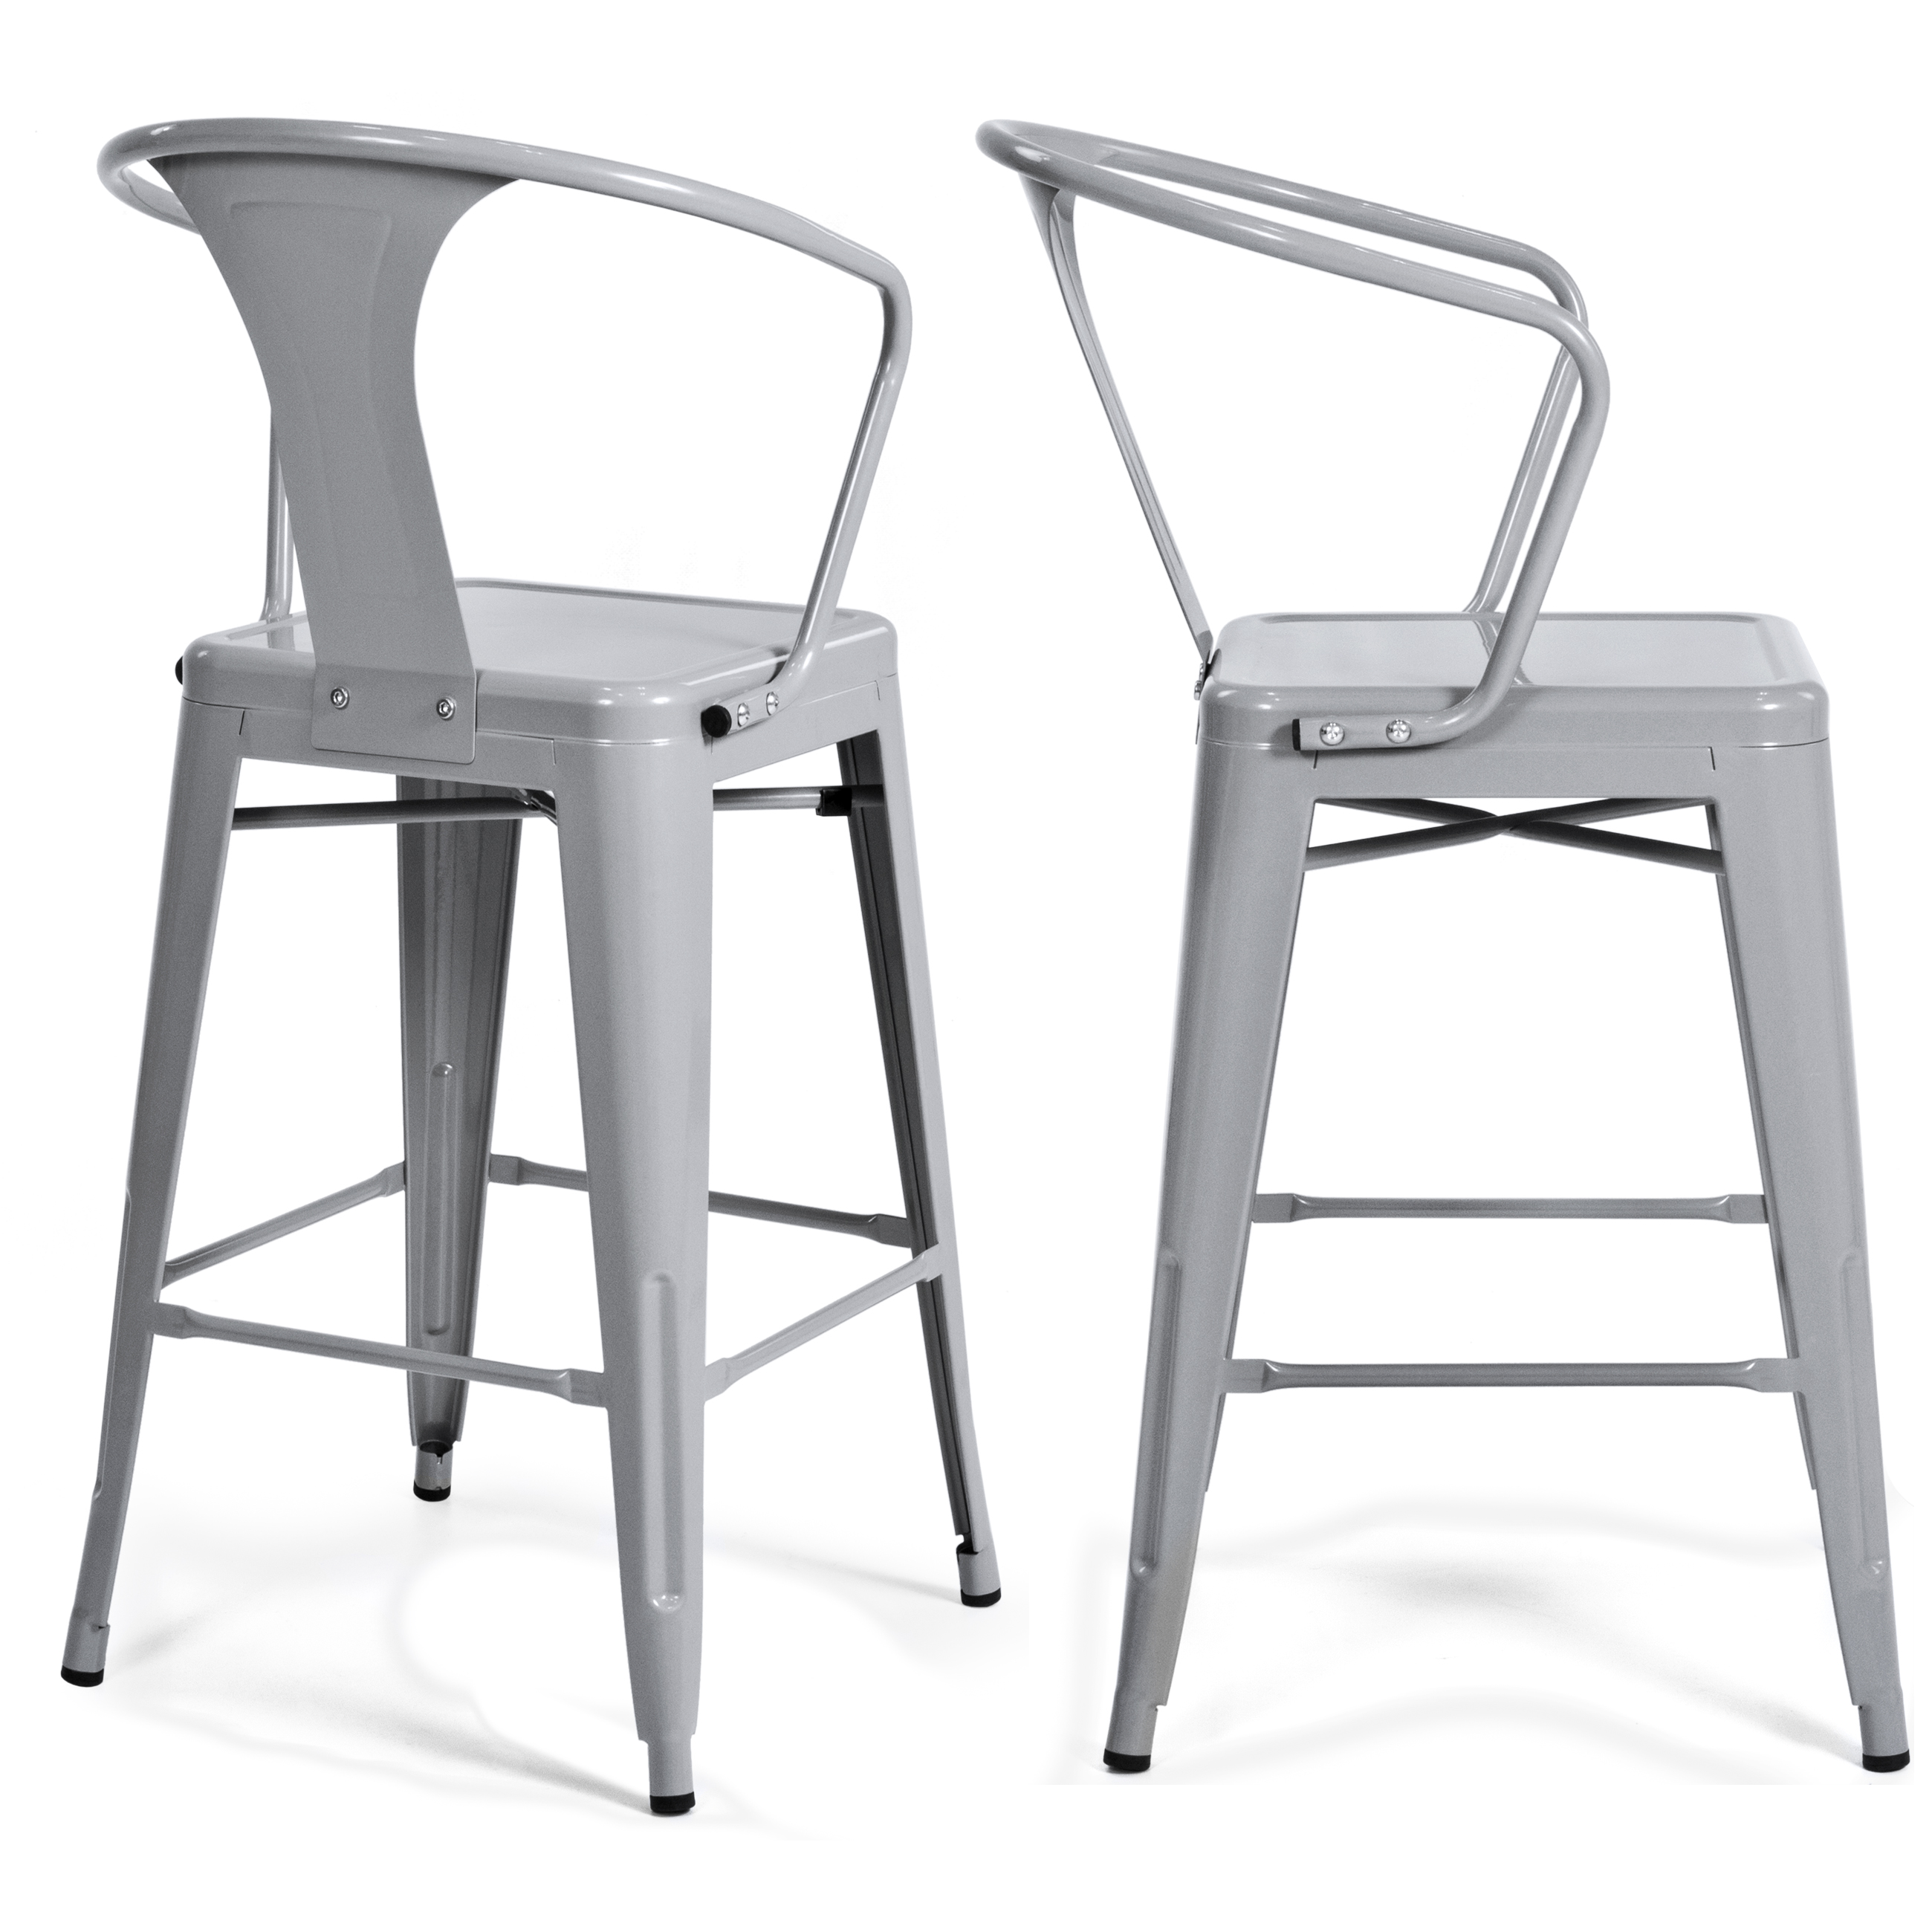 Best Choice Products Set of 2 Metal Bar Stools Vintage Antique Style Bar Stool Arm Chair  sc 1 st  Walmart & Best Choice Products Set of 2 Metal Bar Stools Vintage Antique ... islam-shia.org